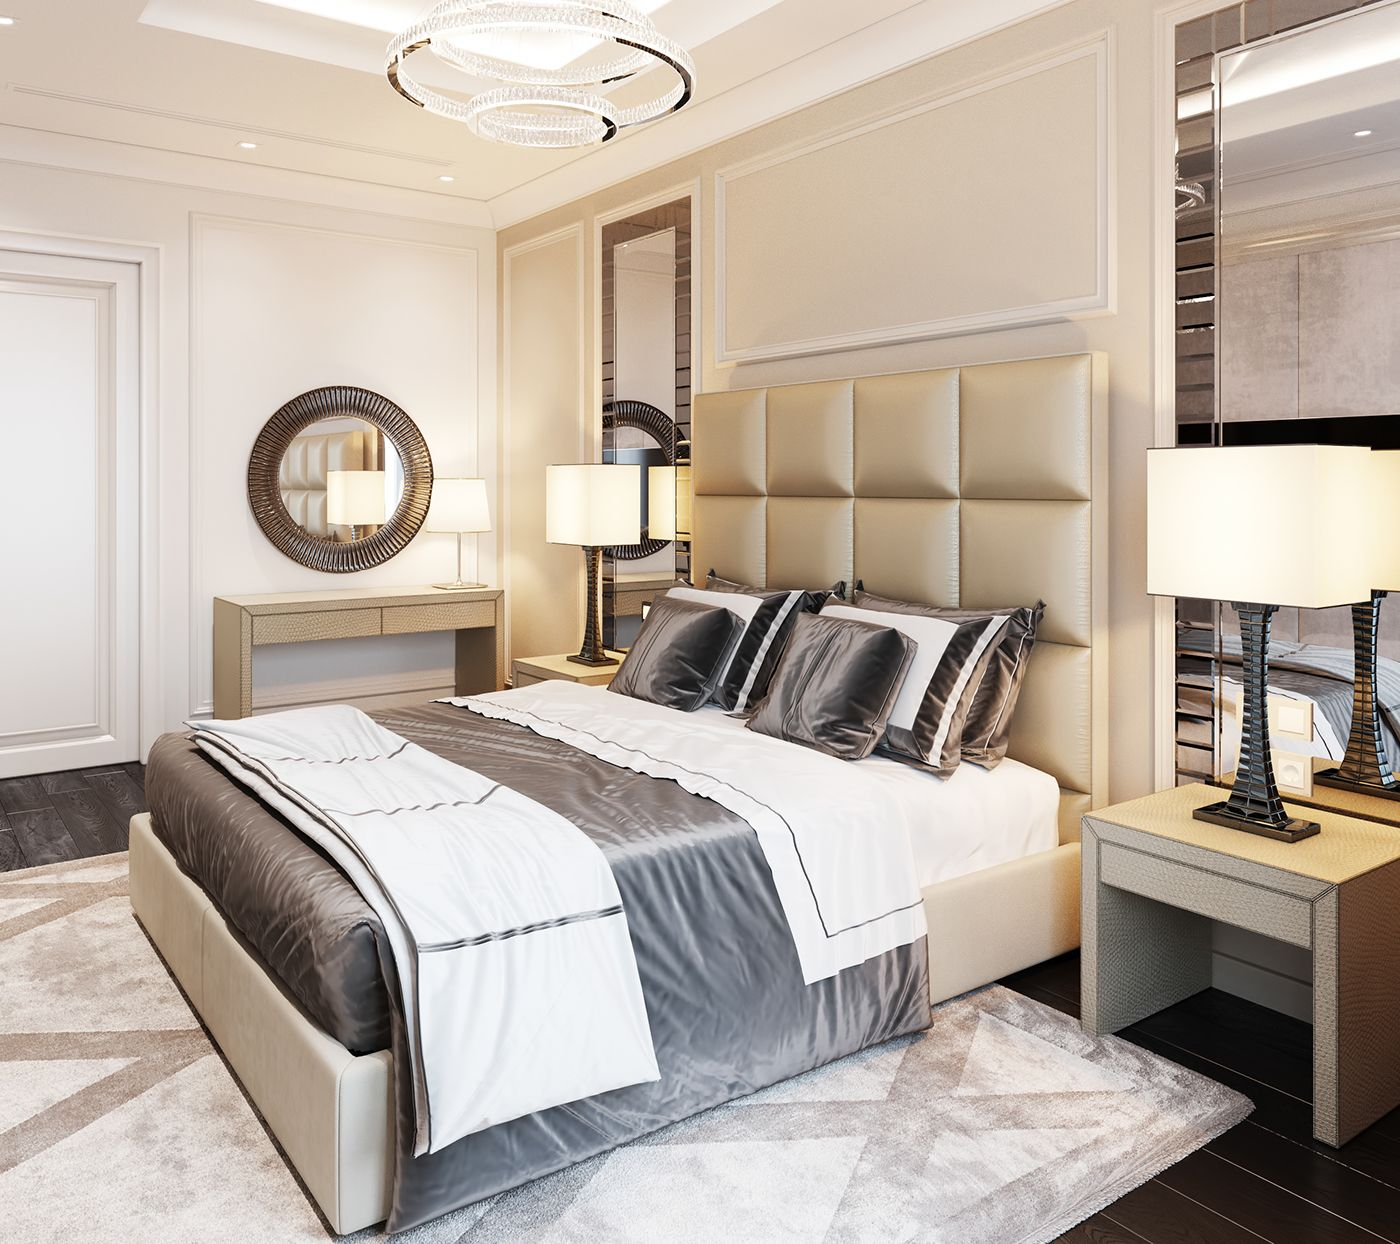 Bedroom In Contemporary Style On Behance: Interior Architecture Design